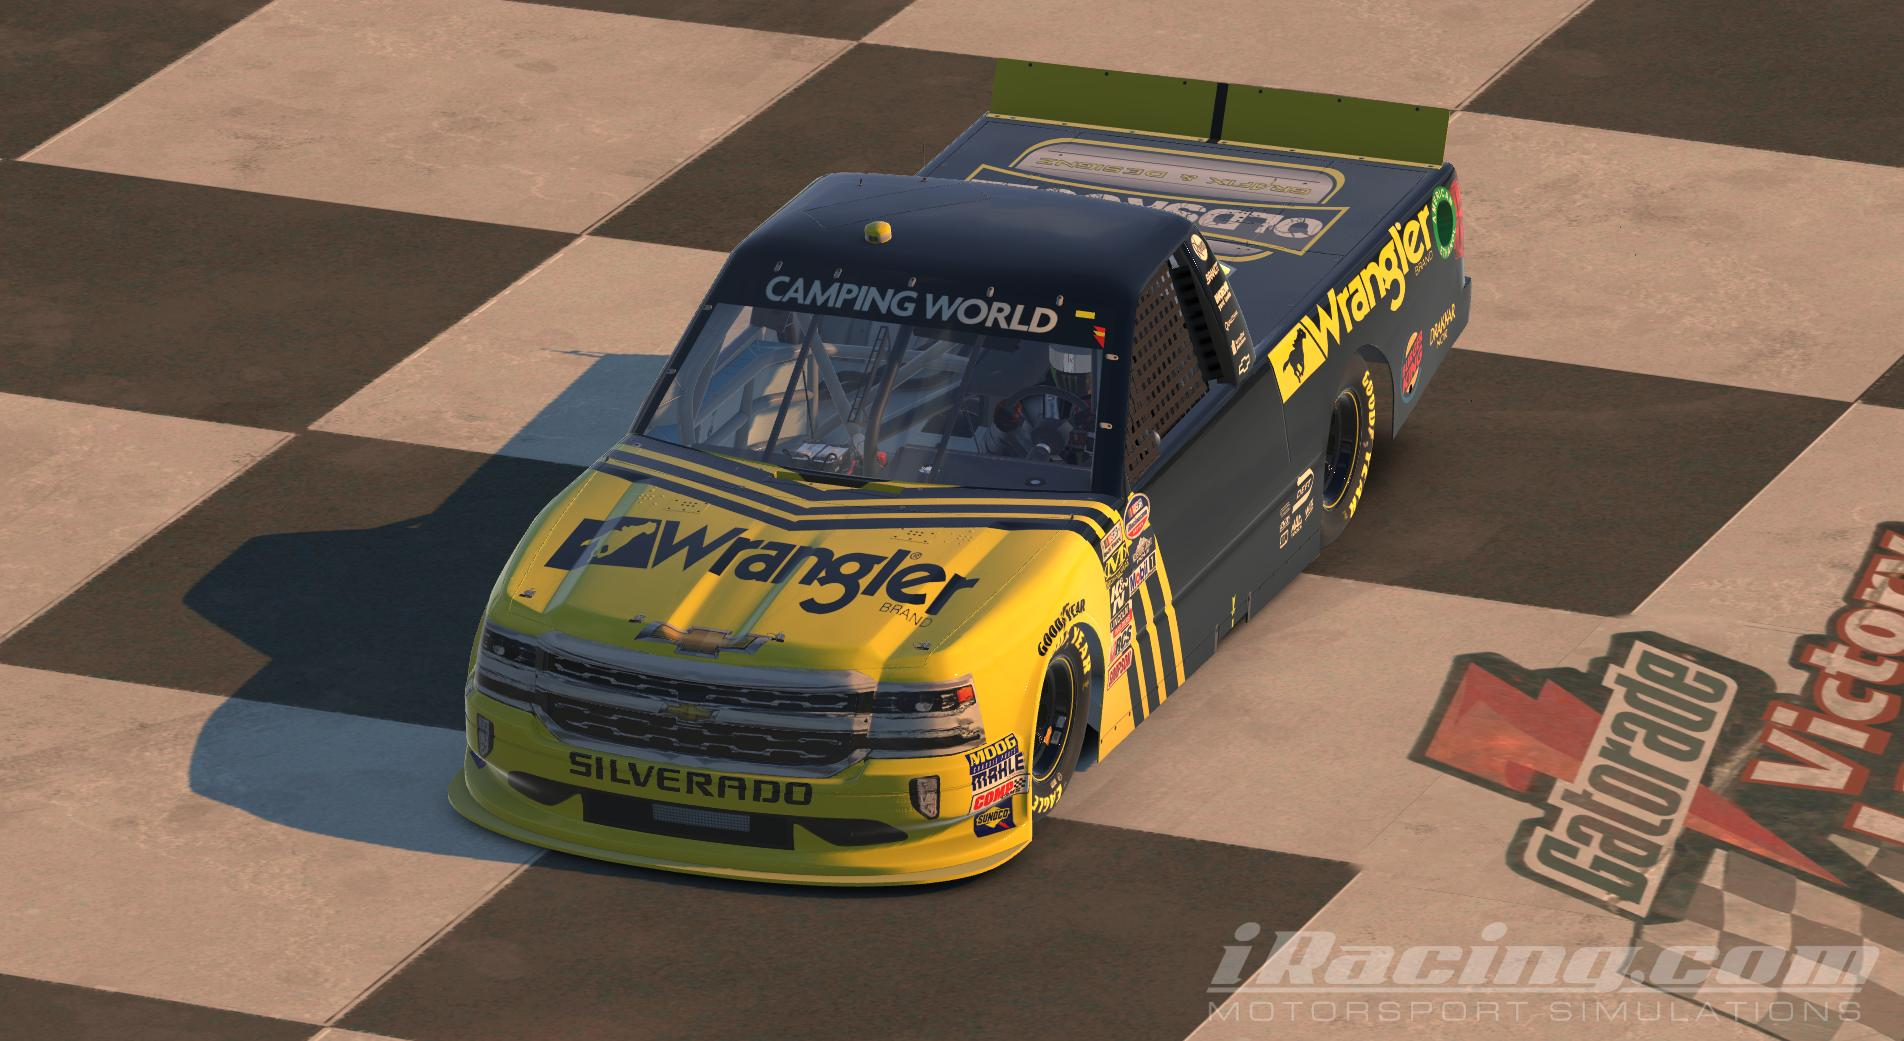 Preview of Wrangler Change up Silverado by Sean D.